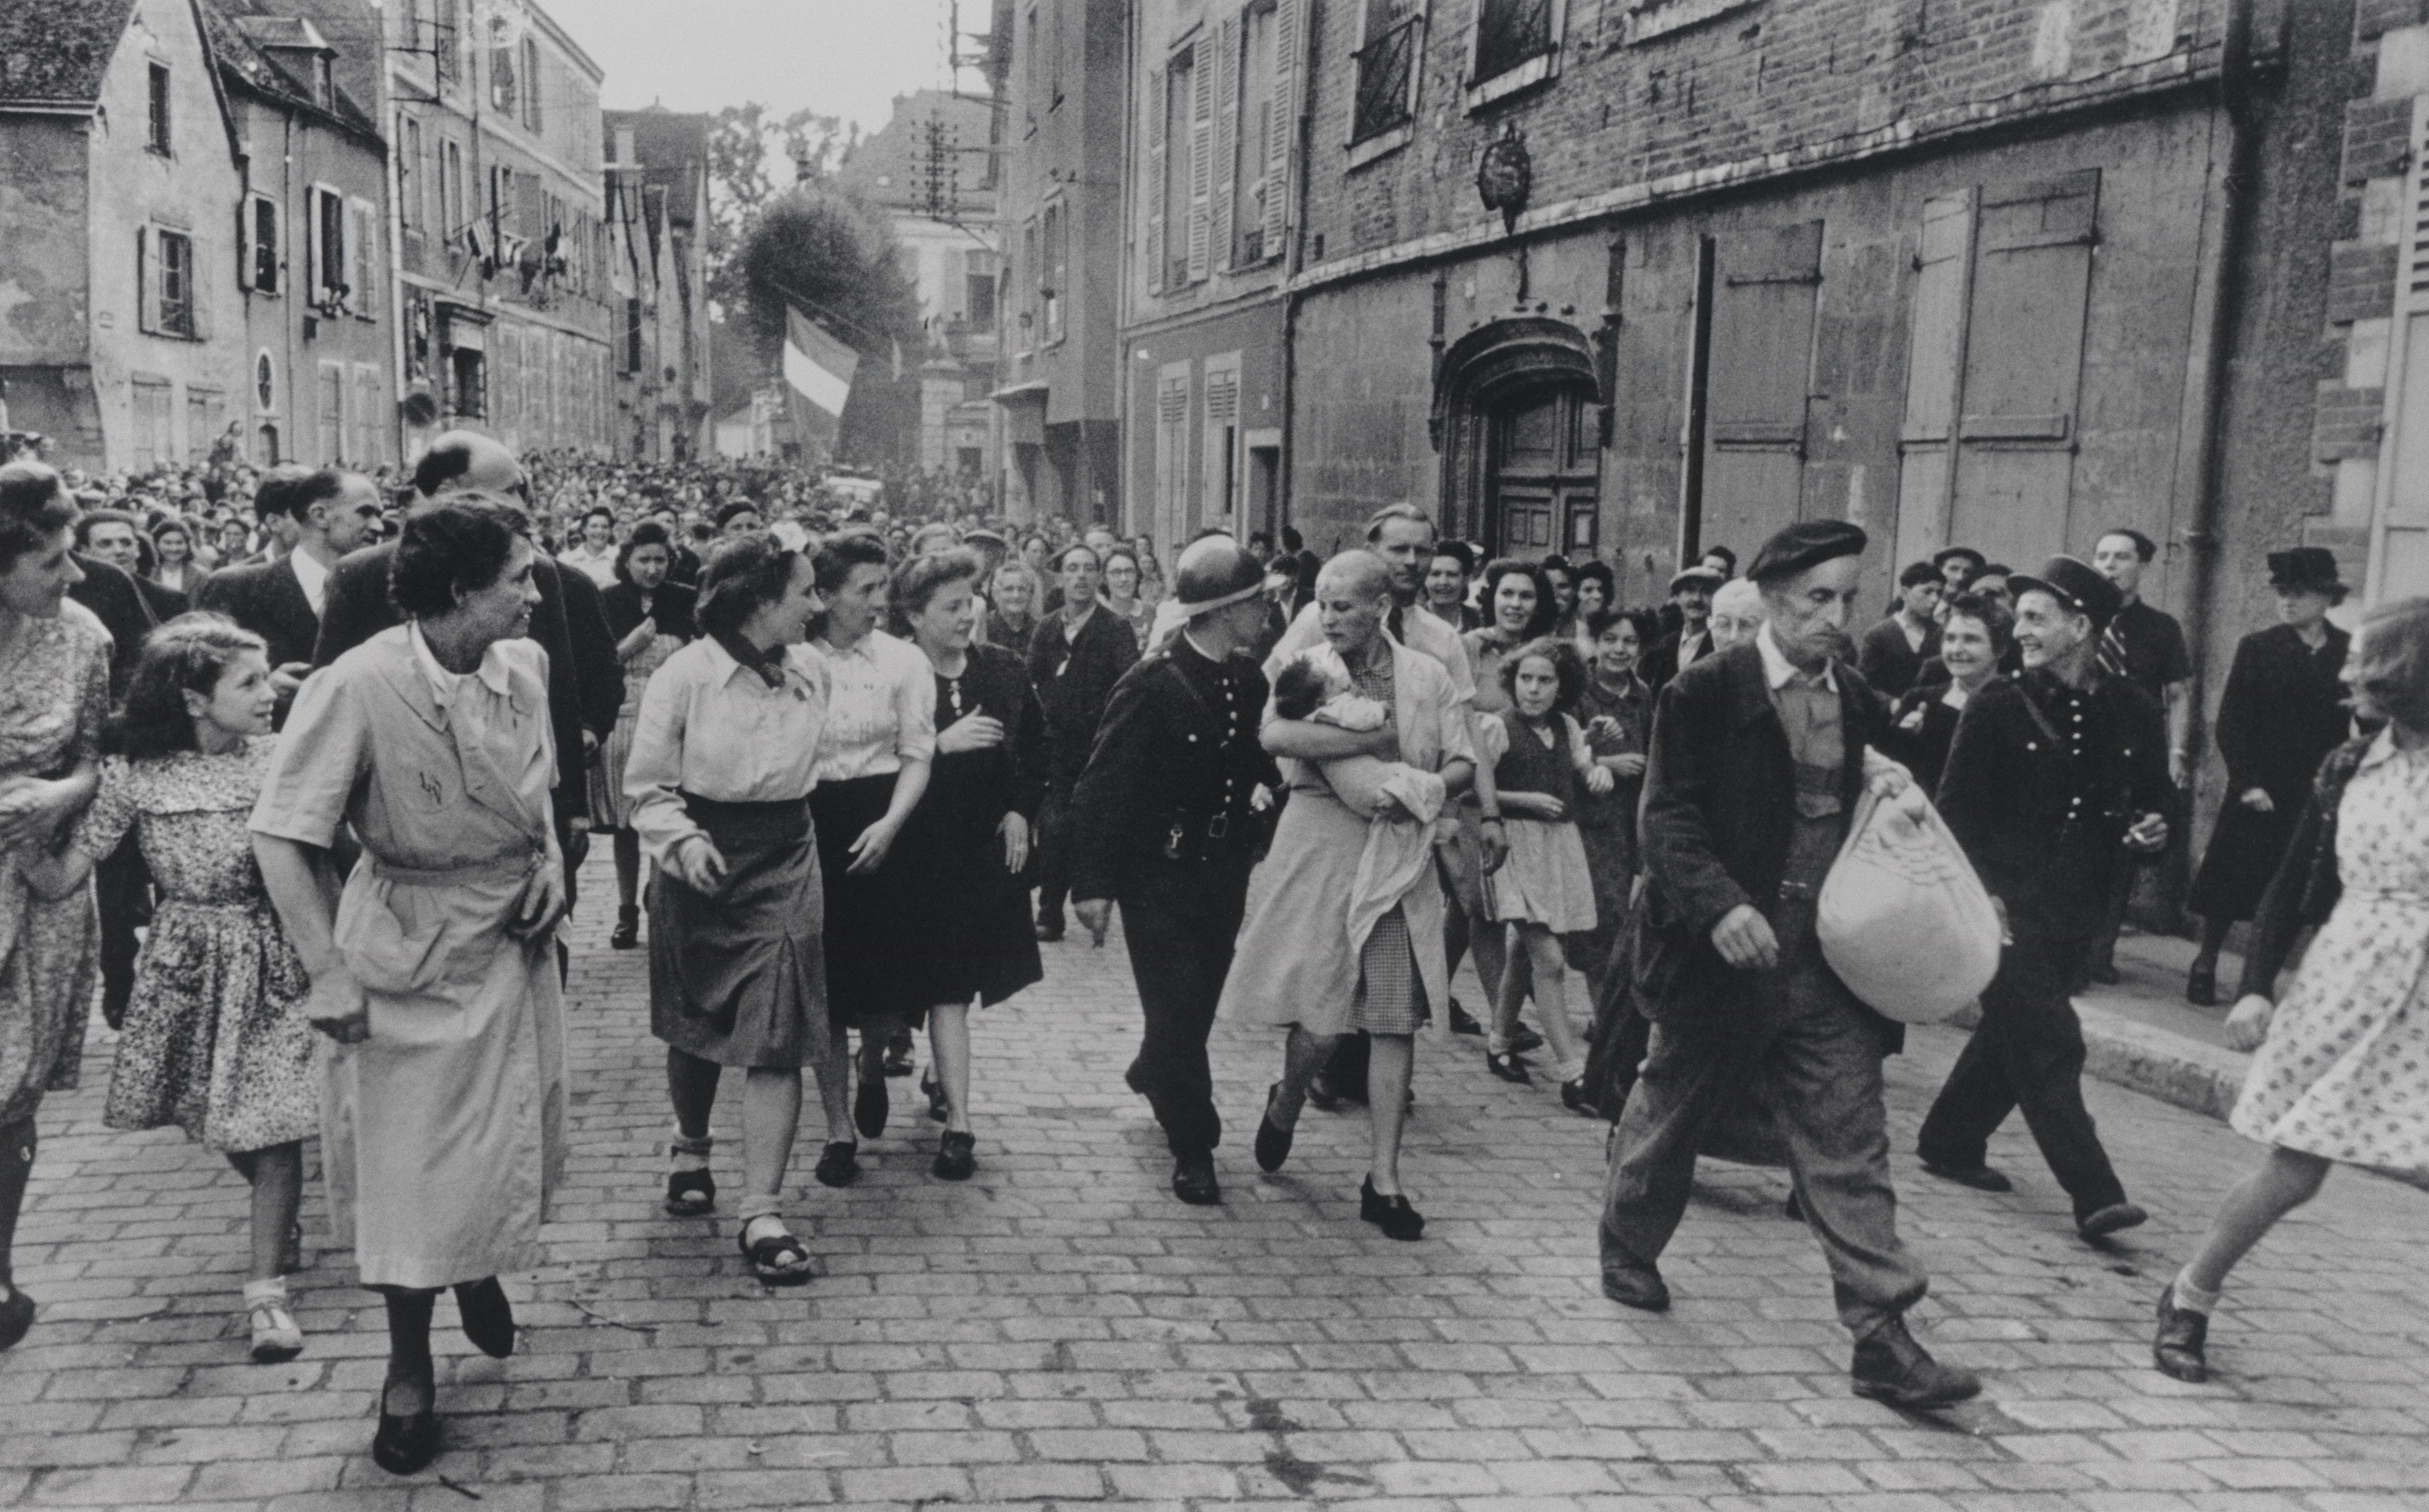 [French woman, who had a baby fathered by a Germany soldier, being marched through the streets after being punished by having her head shaved, Chartres, France], August 18, 1944